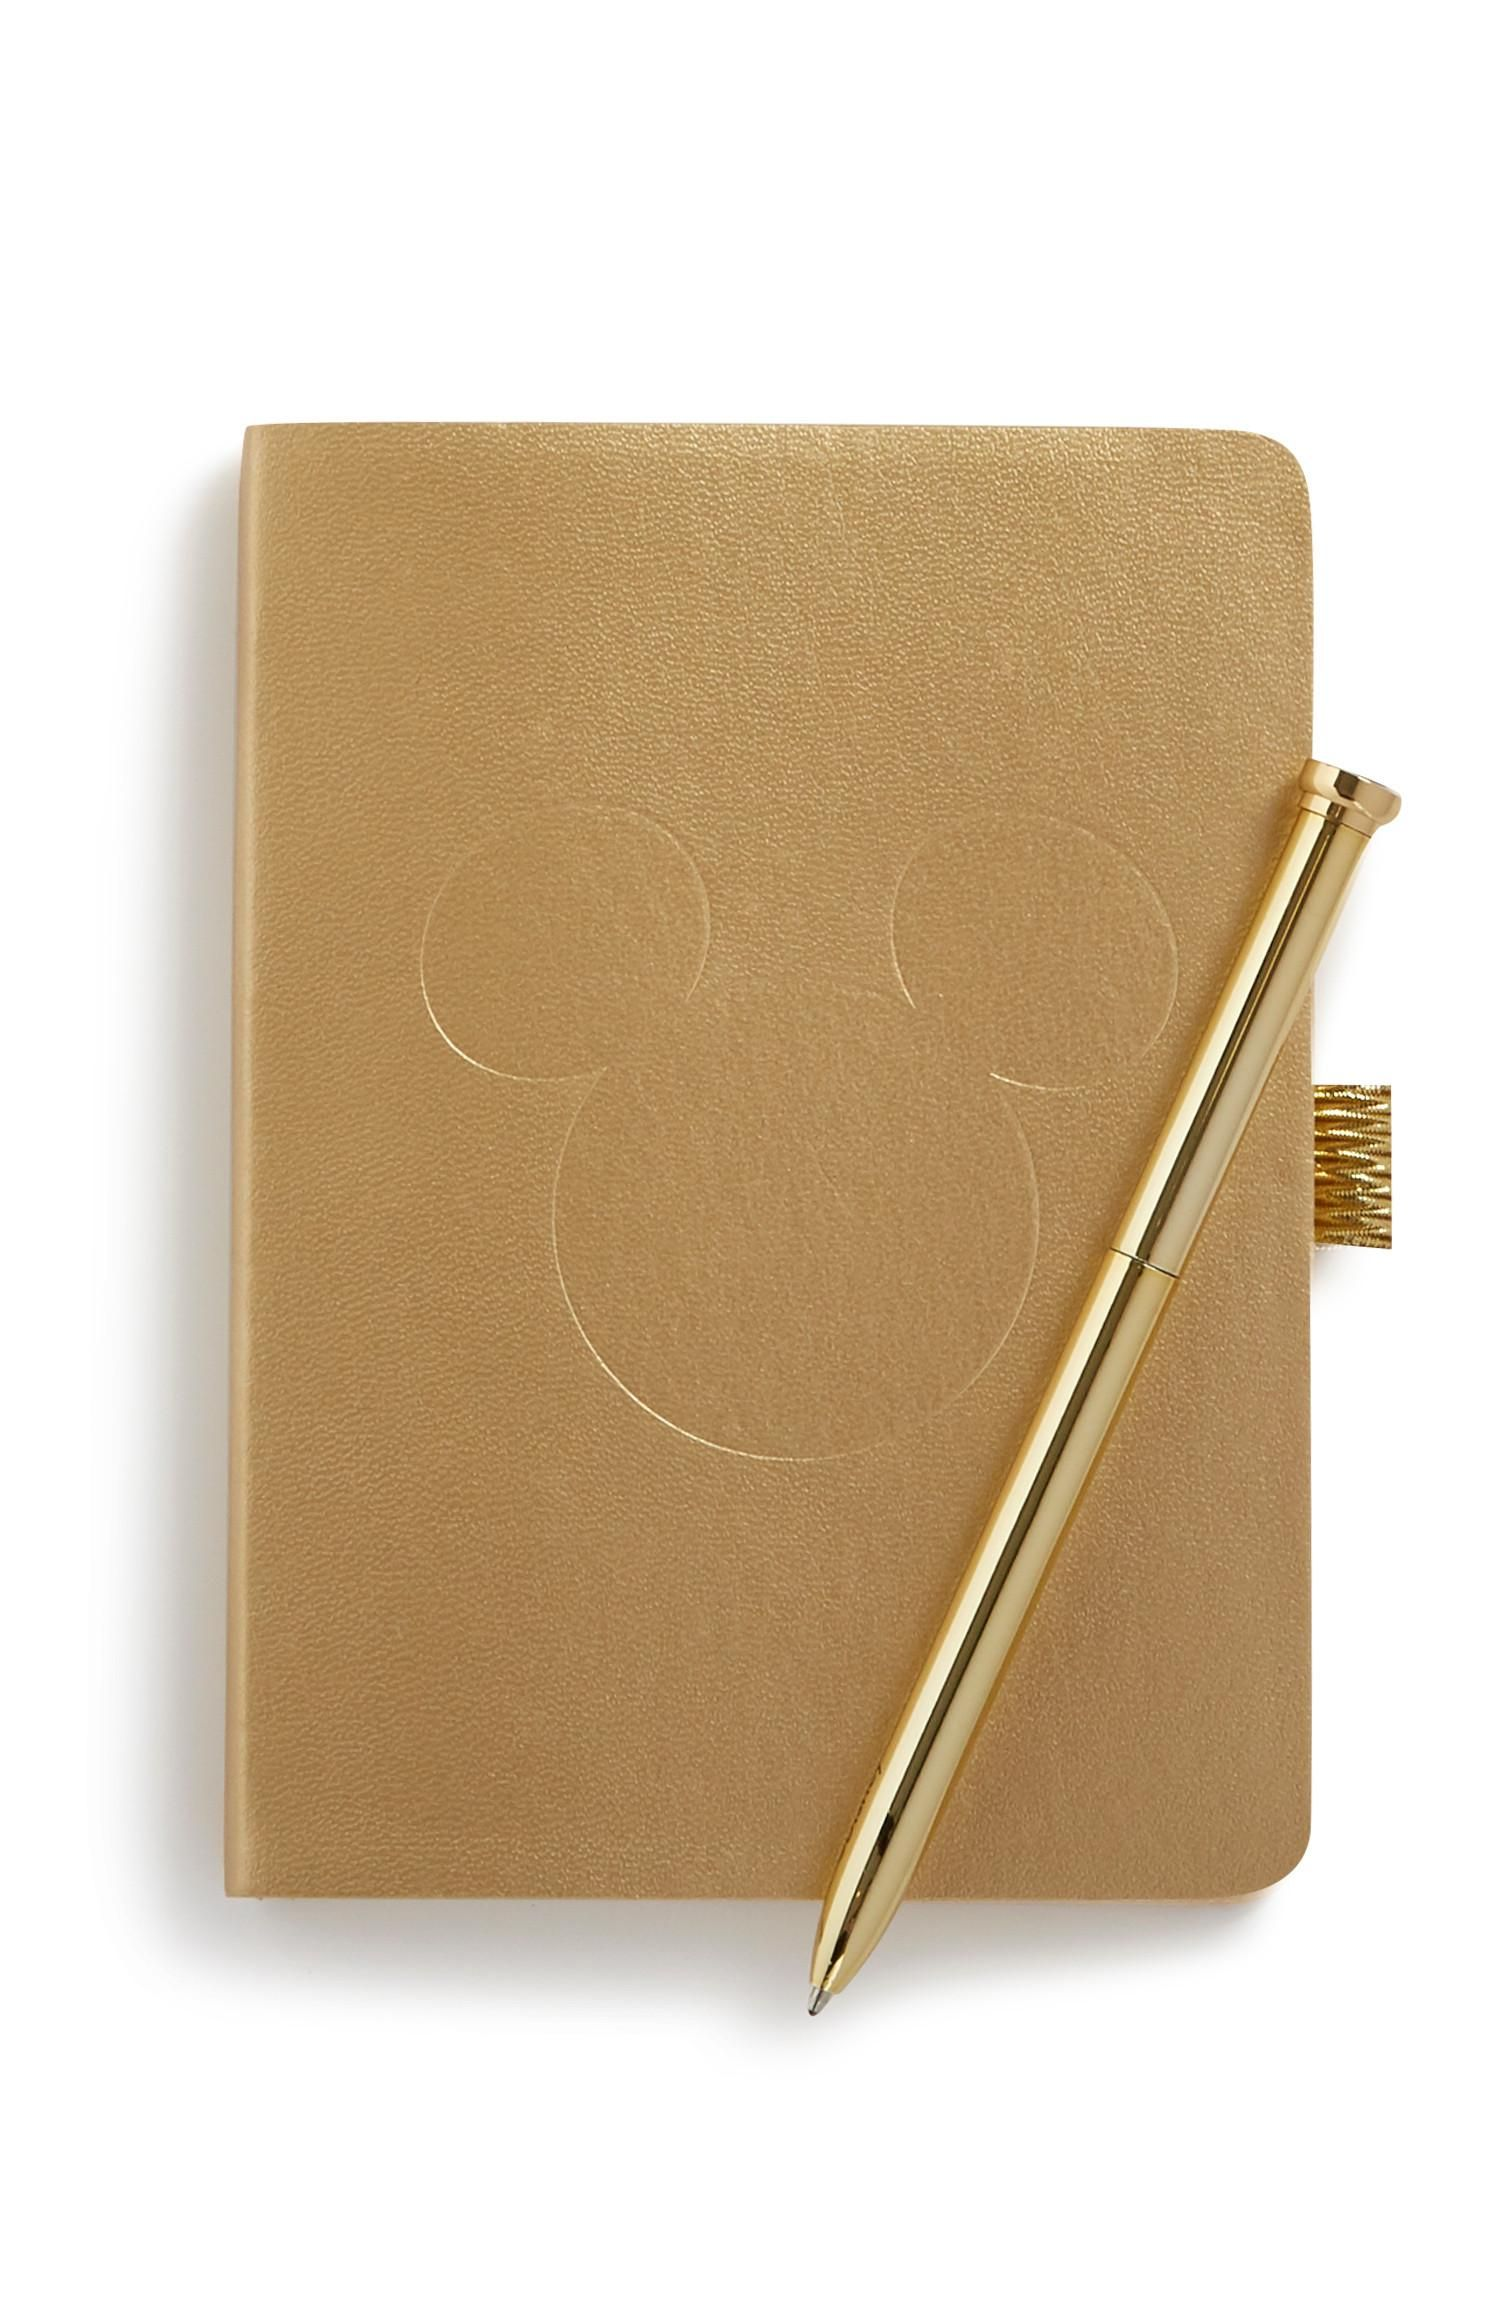 Baby Alive Doll Pen Mickey Mouse Notebook And Gold Pen Stationery Homeware